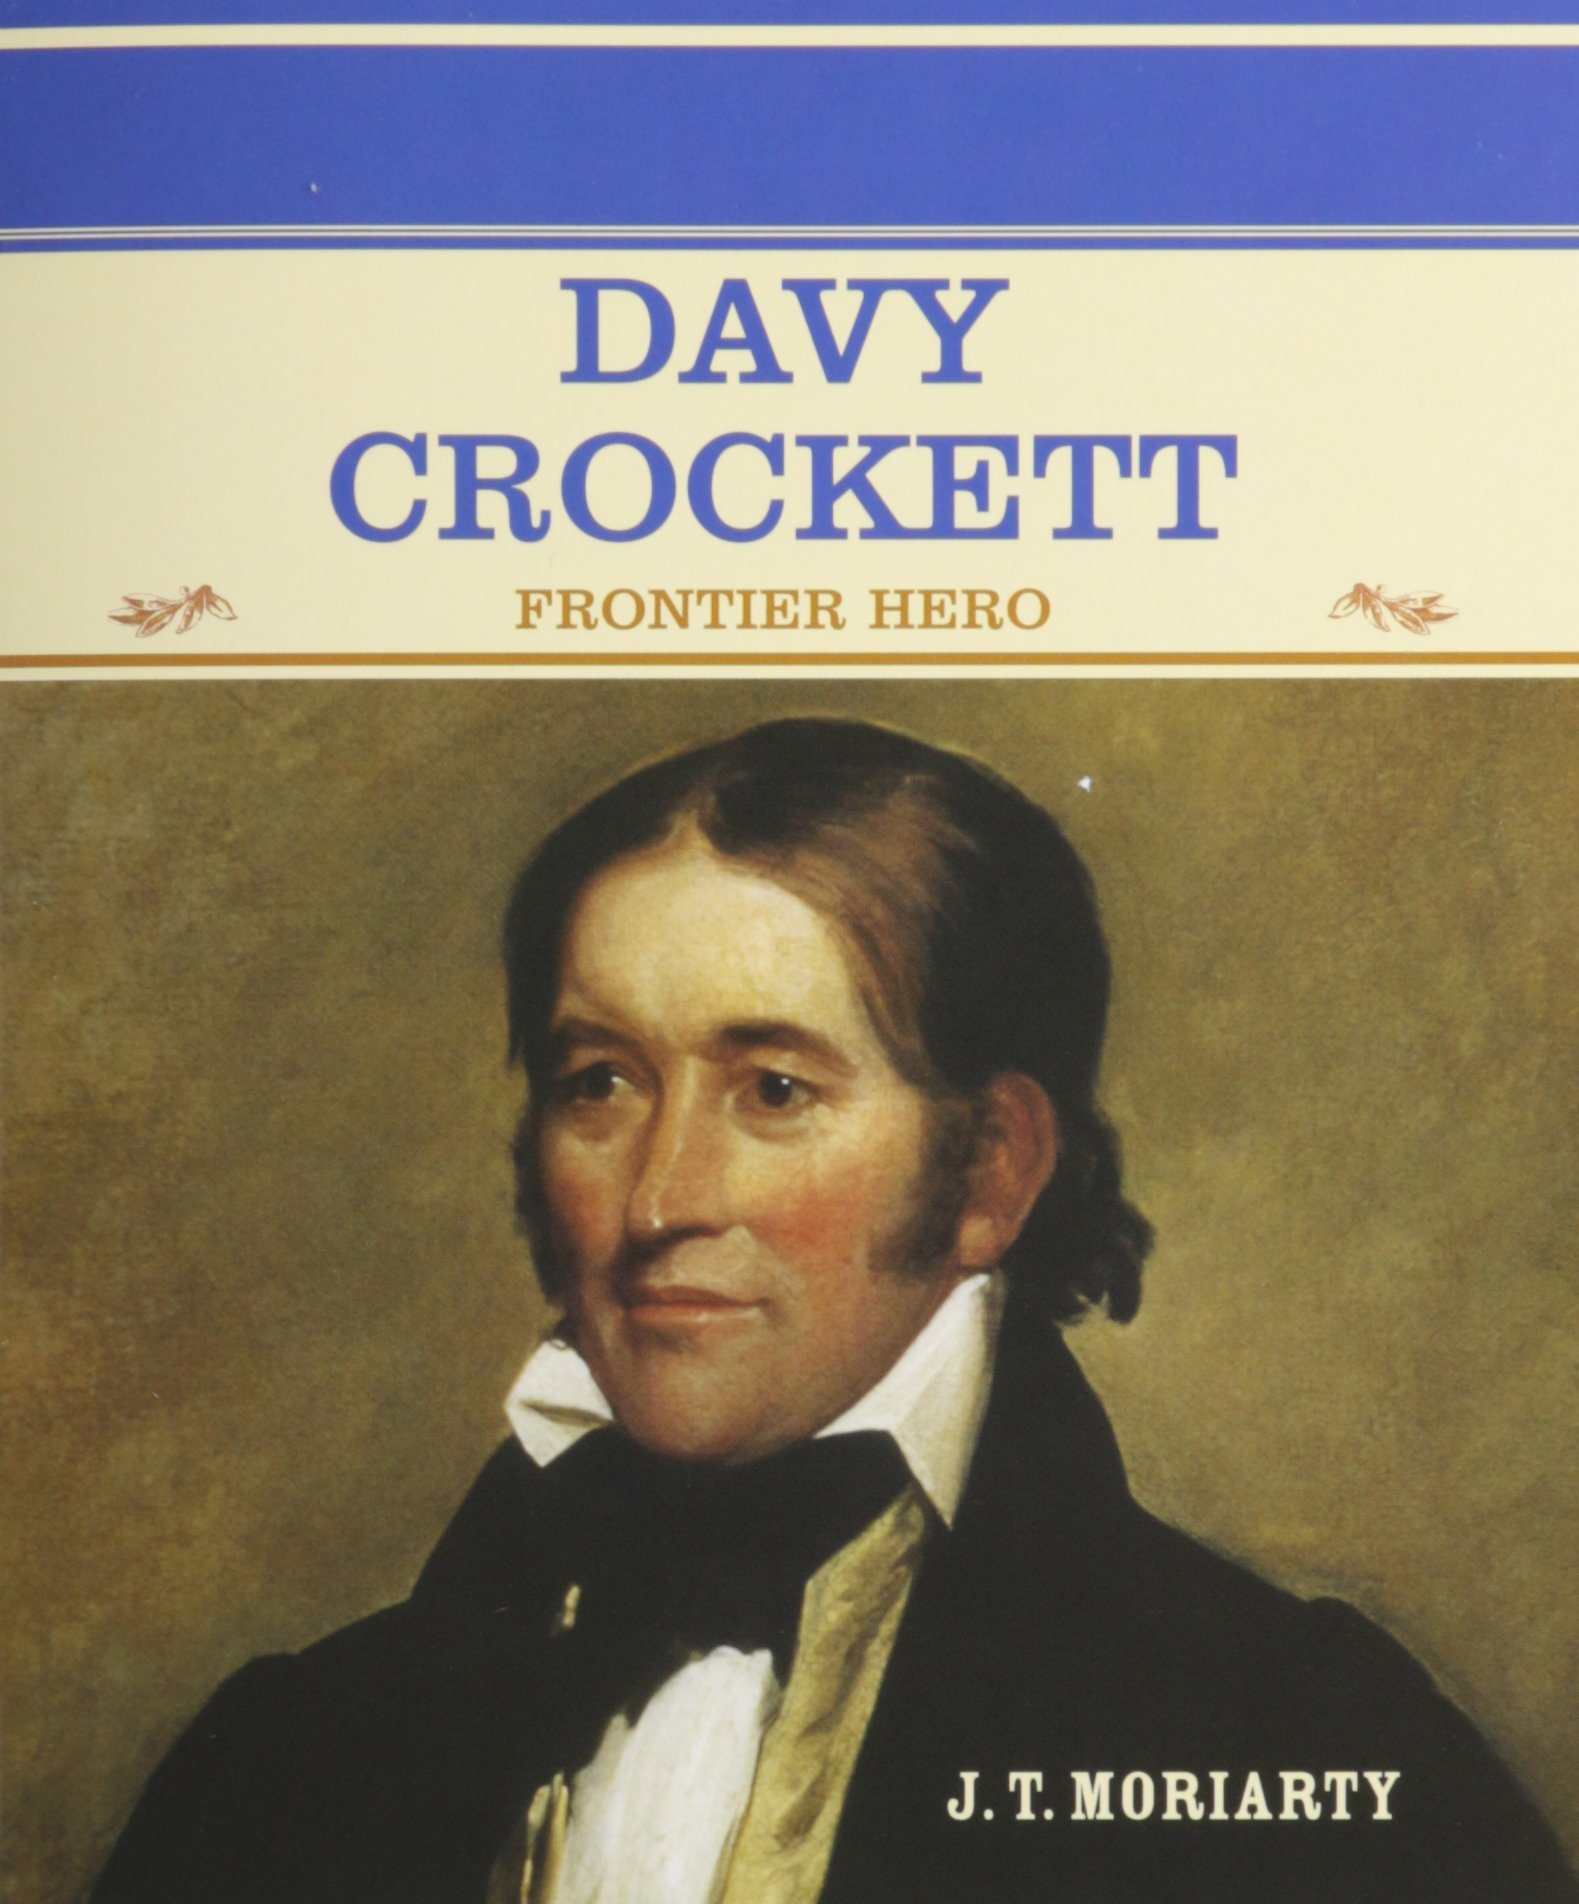 Davy Crockett: Frontier Hero (Primary Sources of Famous People in American History) PDF